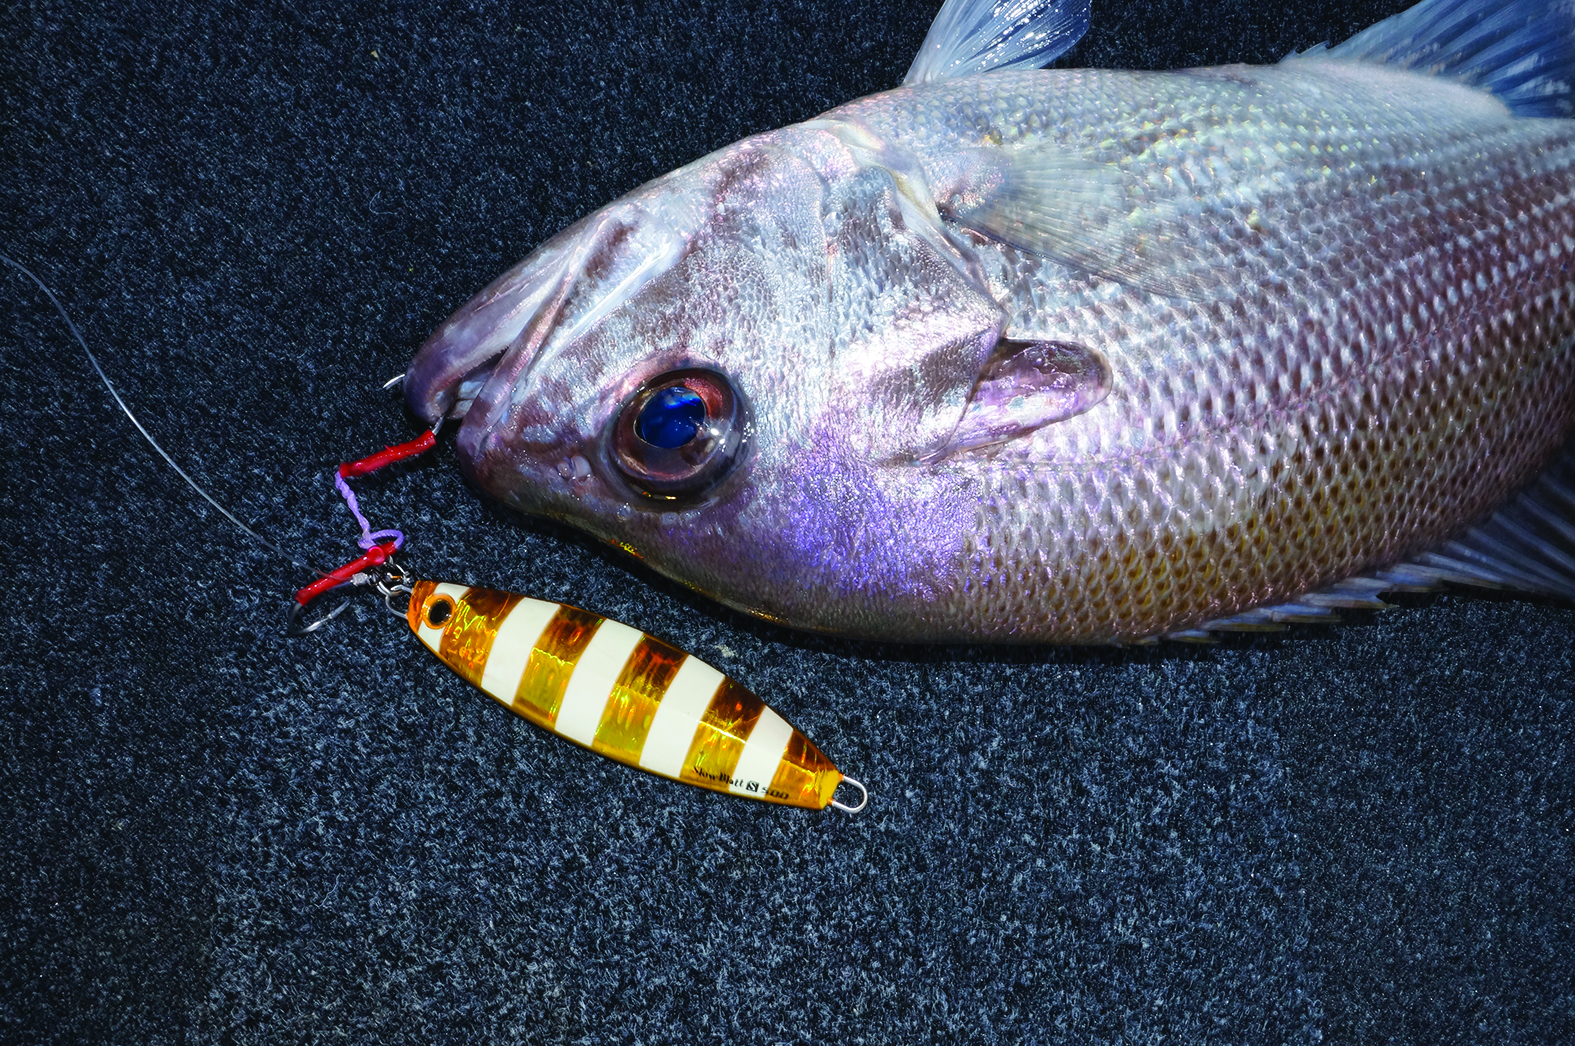 A slowly jigged metal with a shape similar to this Palms Slow Blatt will account for many pearl perch this winter.